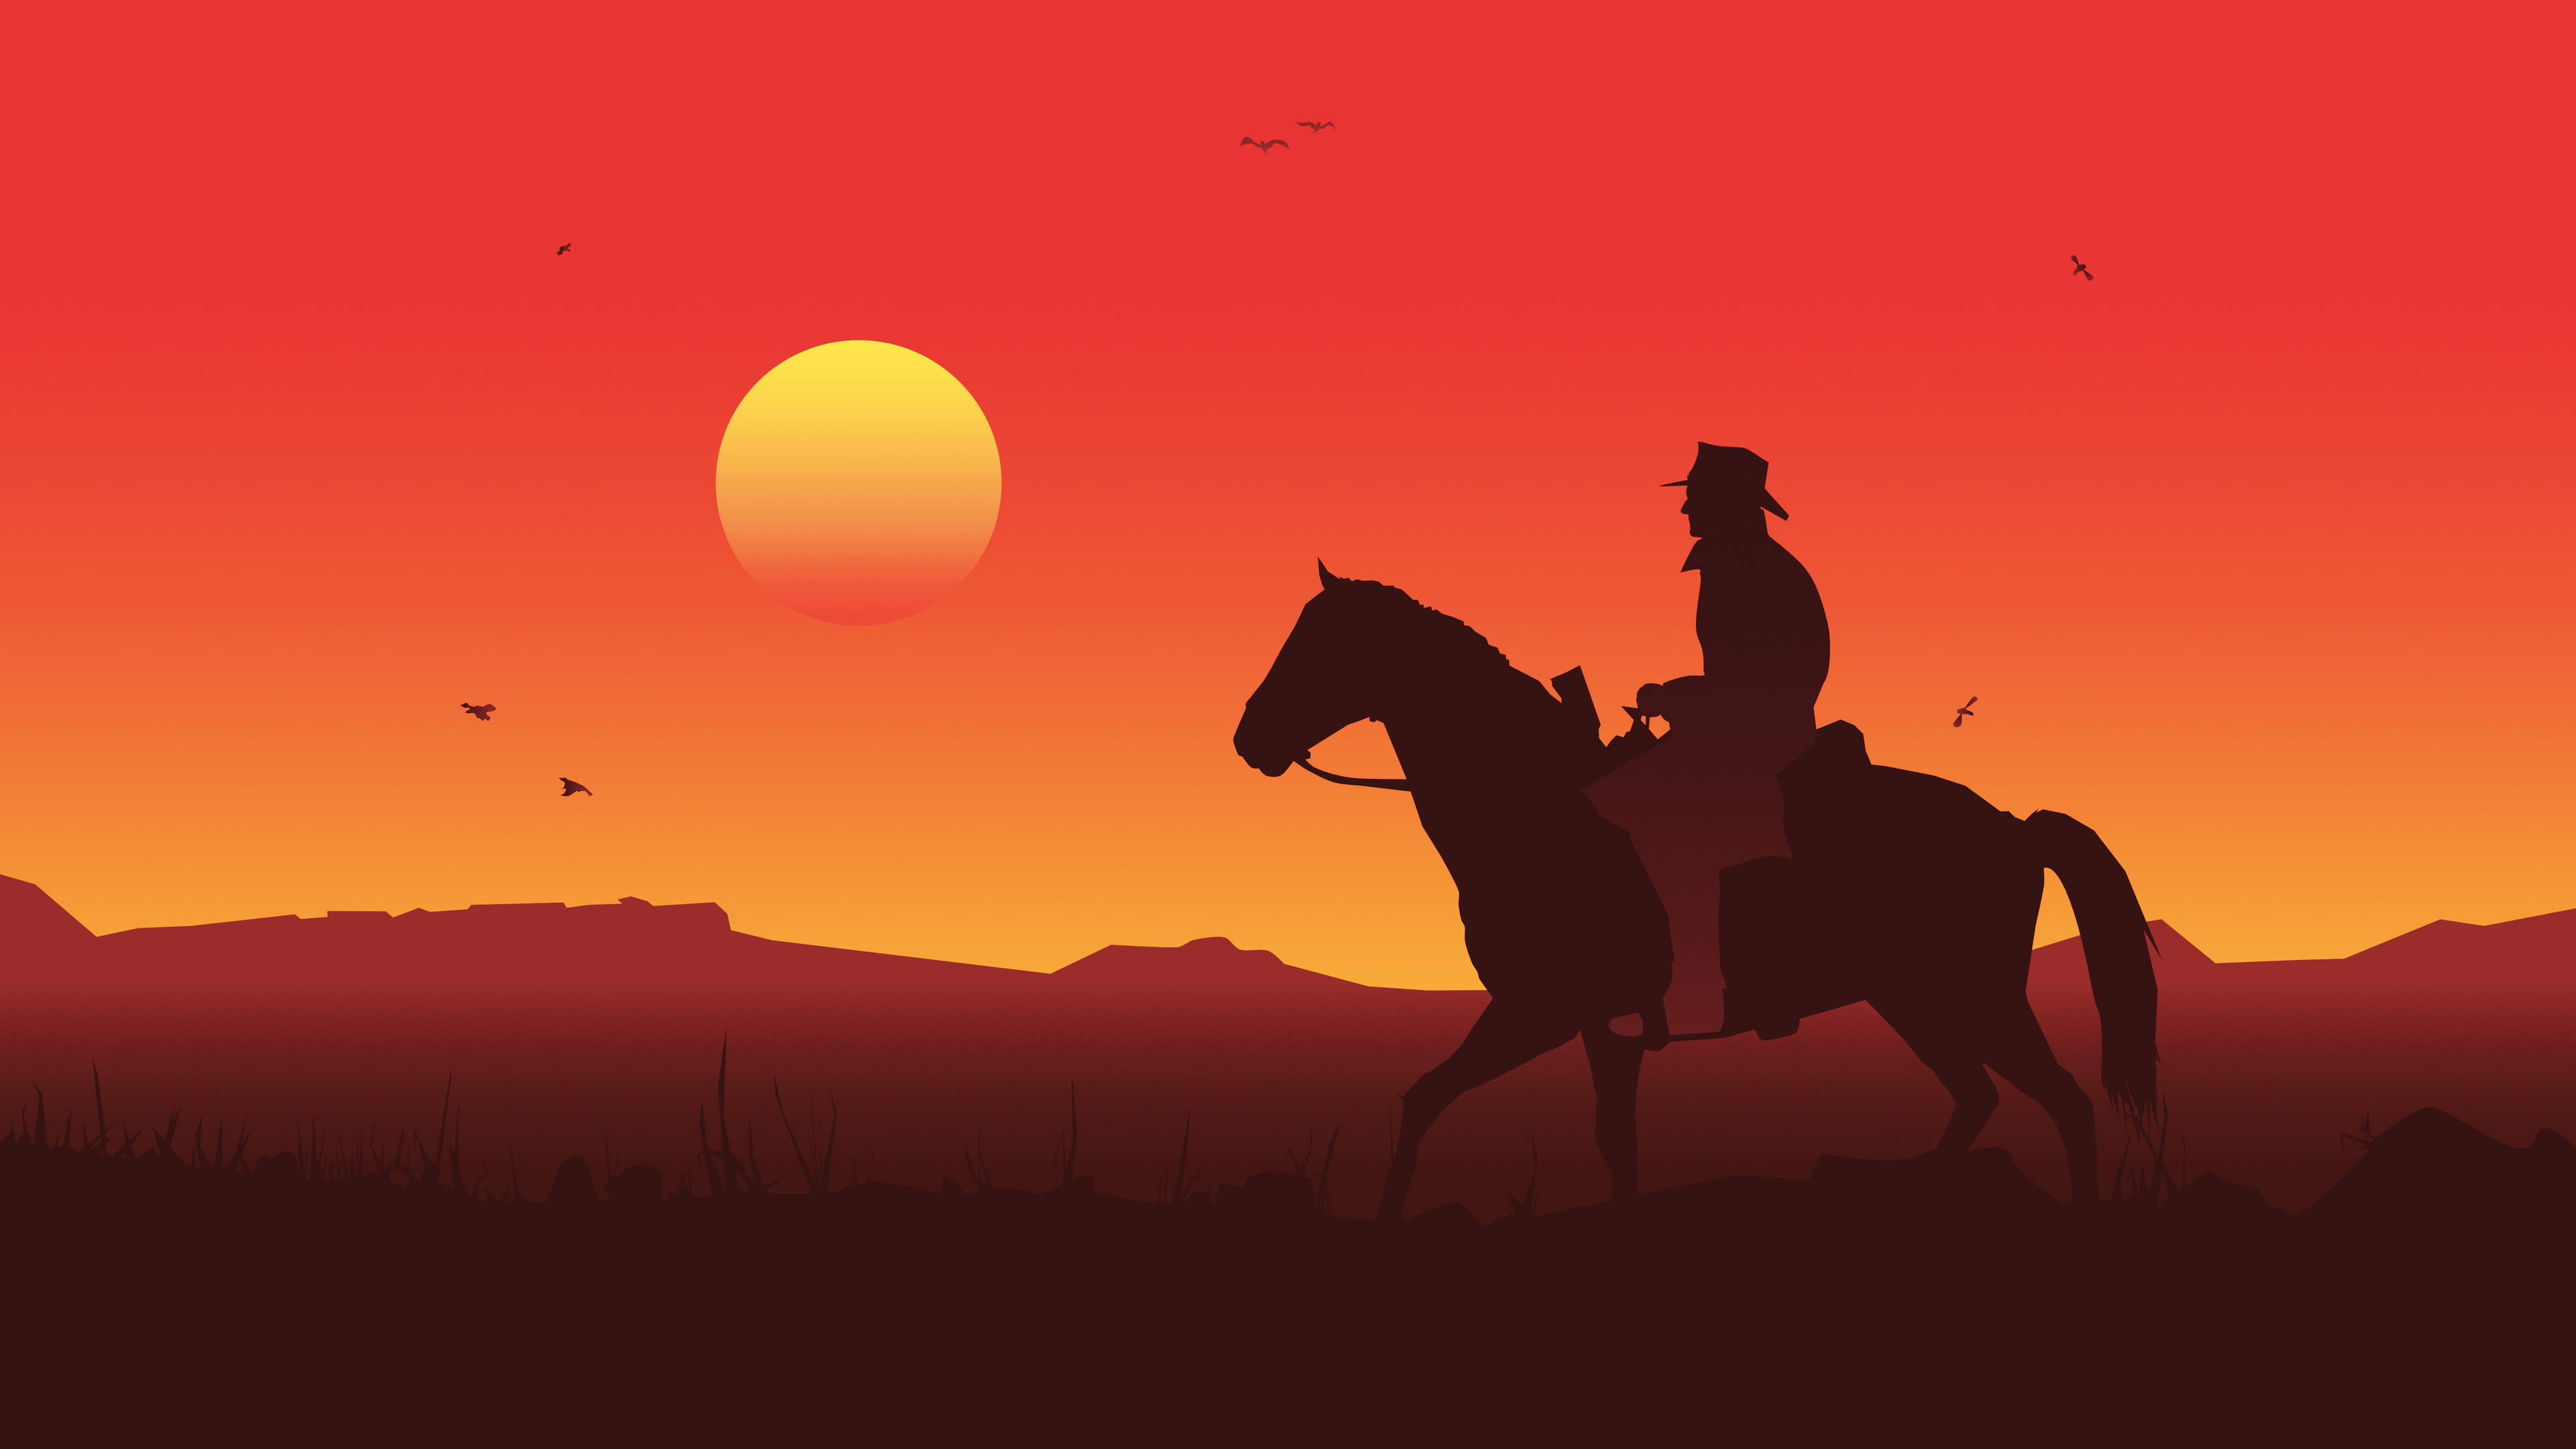 red dead redemption 2 illustration 4k 1545589471 - Red Dead Redemption 2 Illustration 4k - red dead redemption 2 wallpapers, ps games wallpapers, hd-wallpapers, games wallpapers, 5k wallpapers, 4k-wallpapers, 2018 games wallpapers